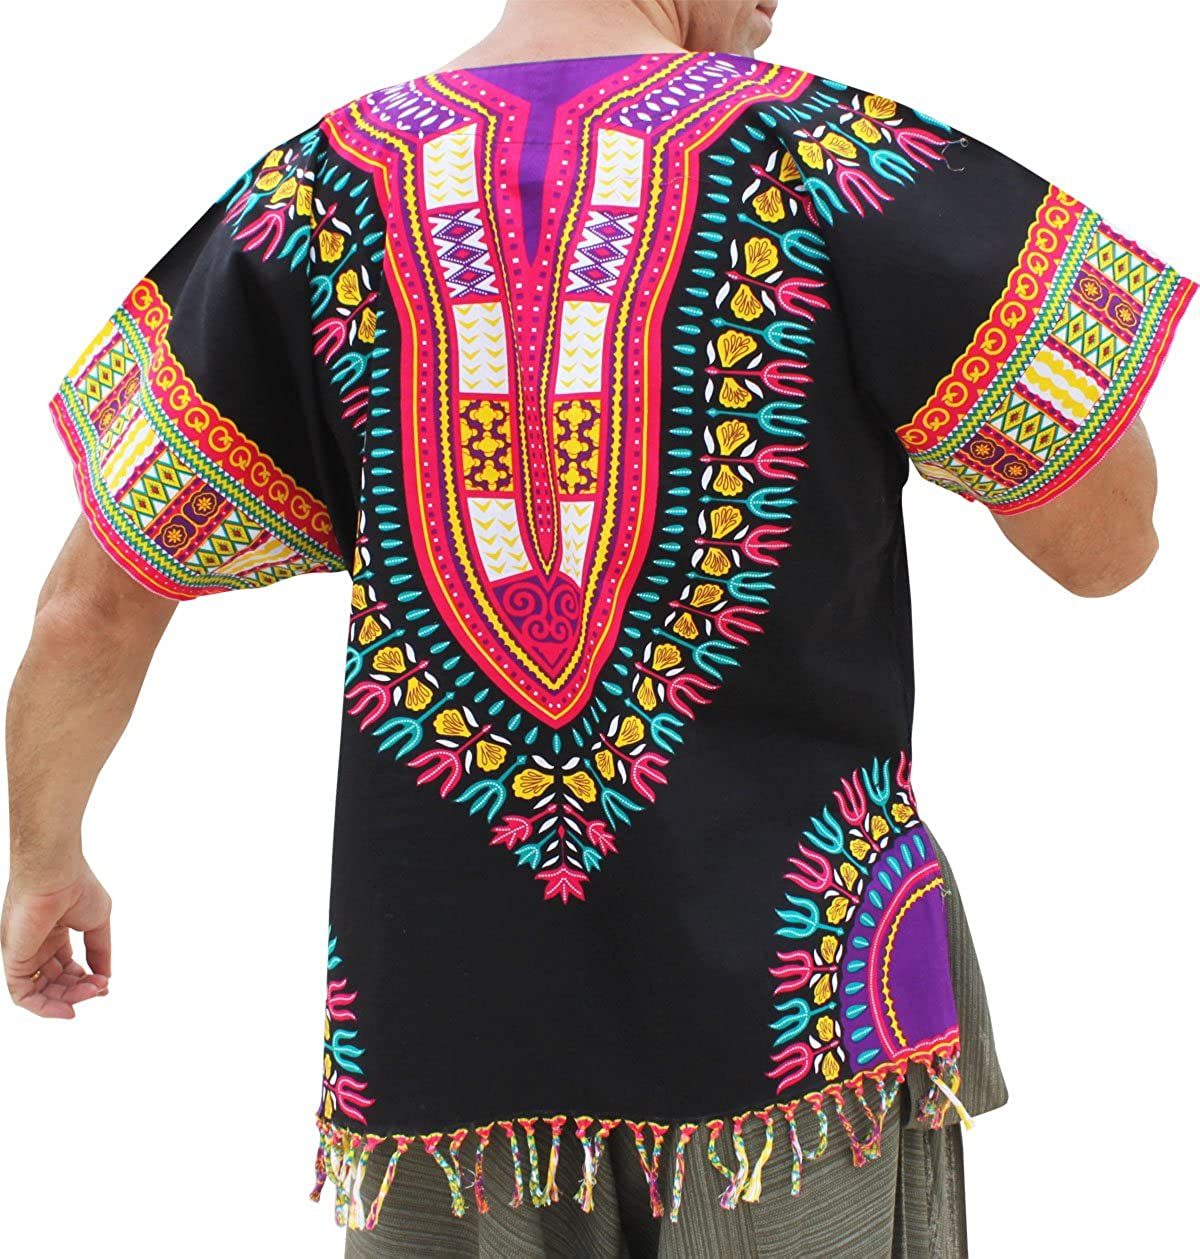 RaanPahMuang Bold Cotton Dashiki Unisex African Shirt with Tassels and Pockets